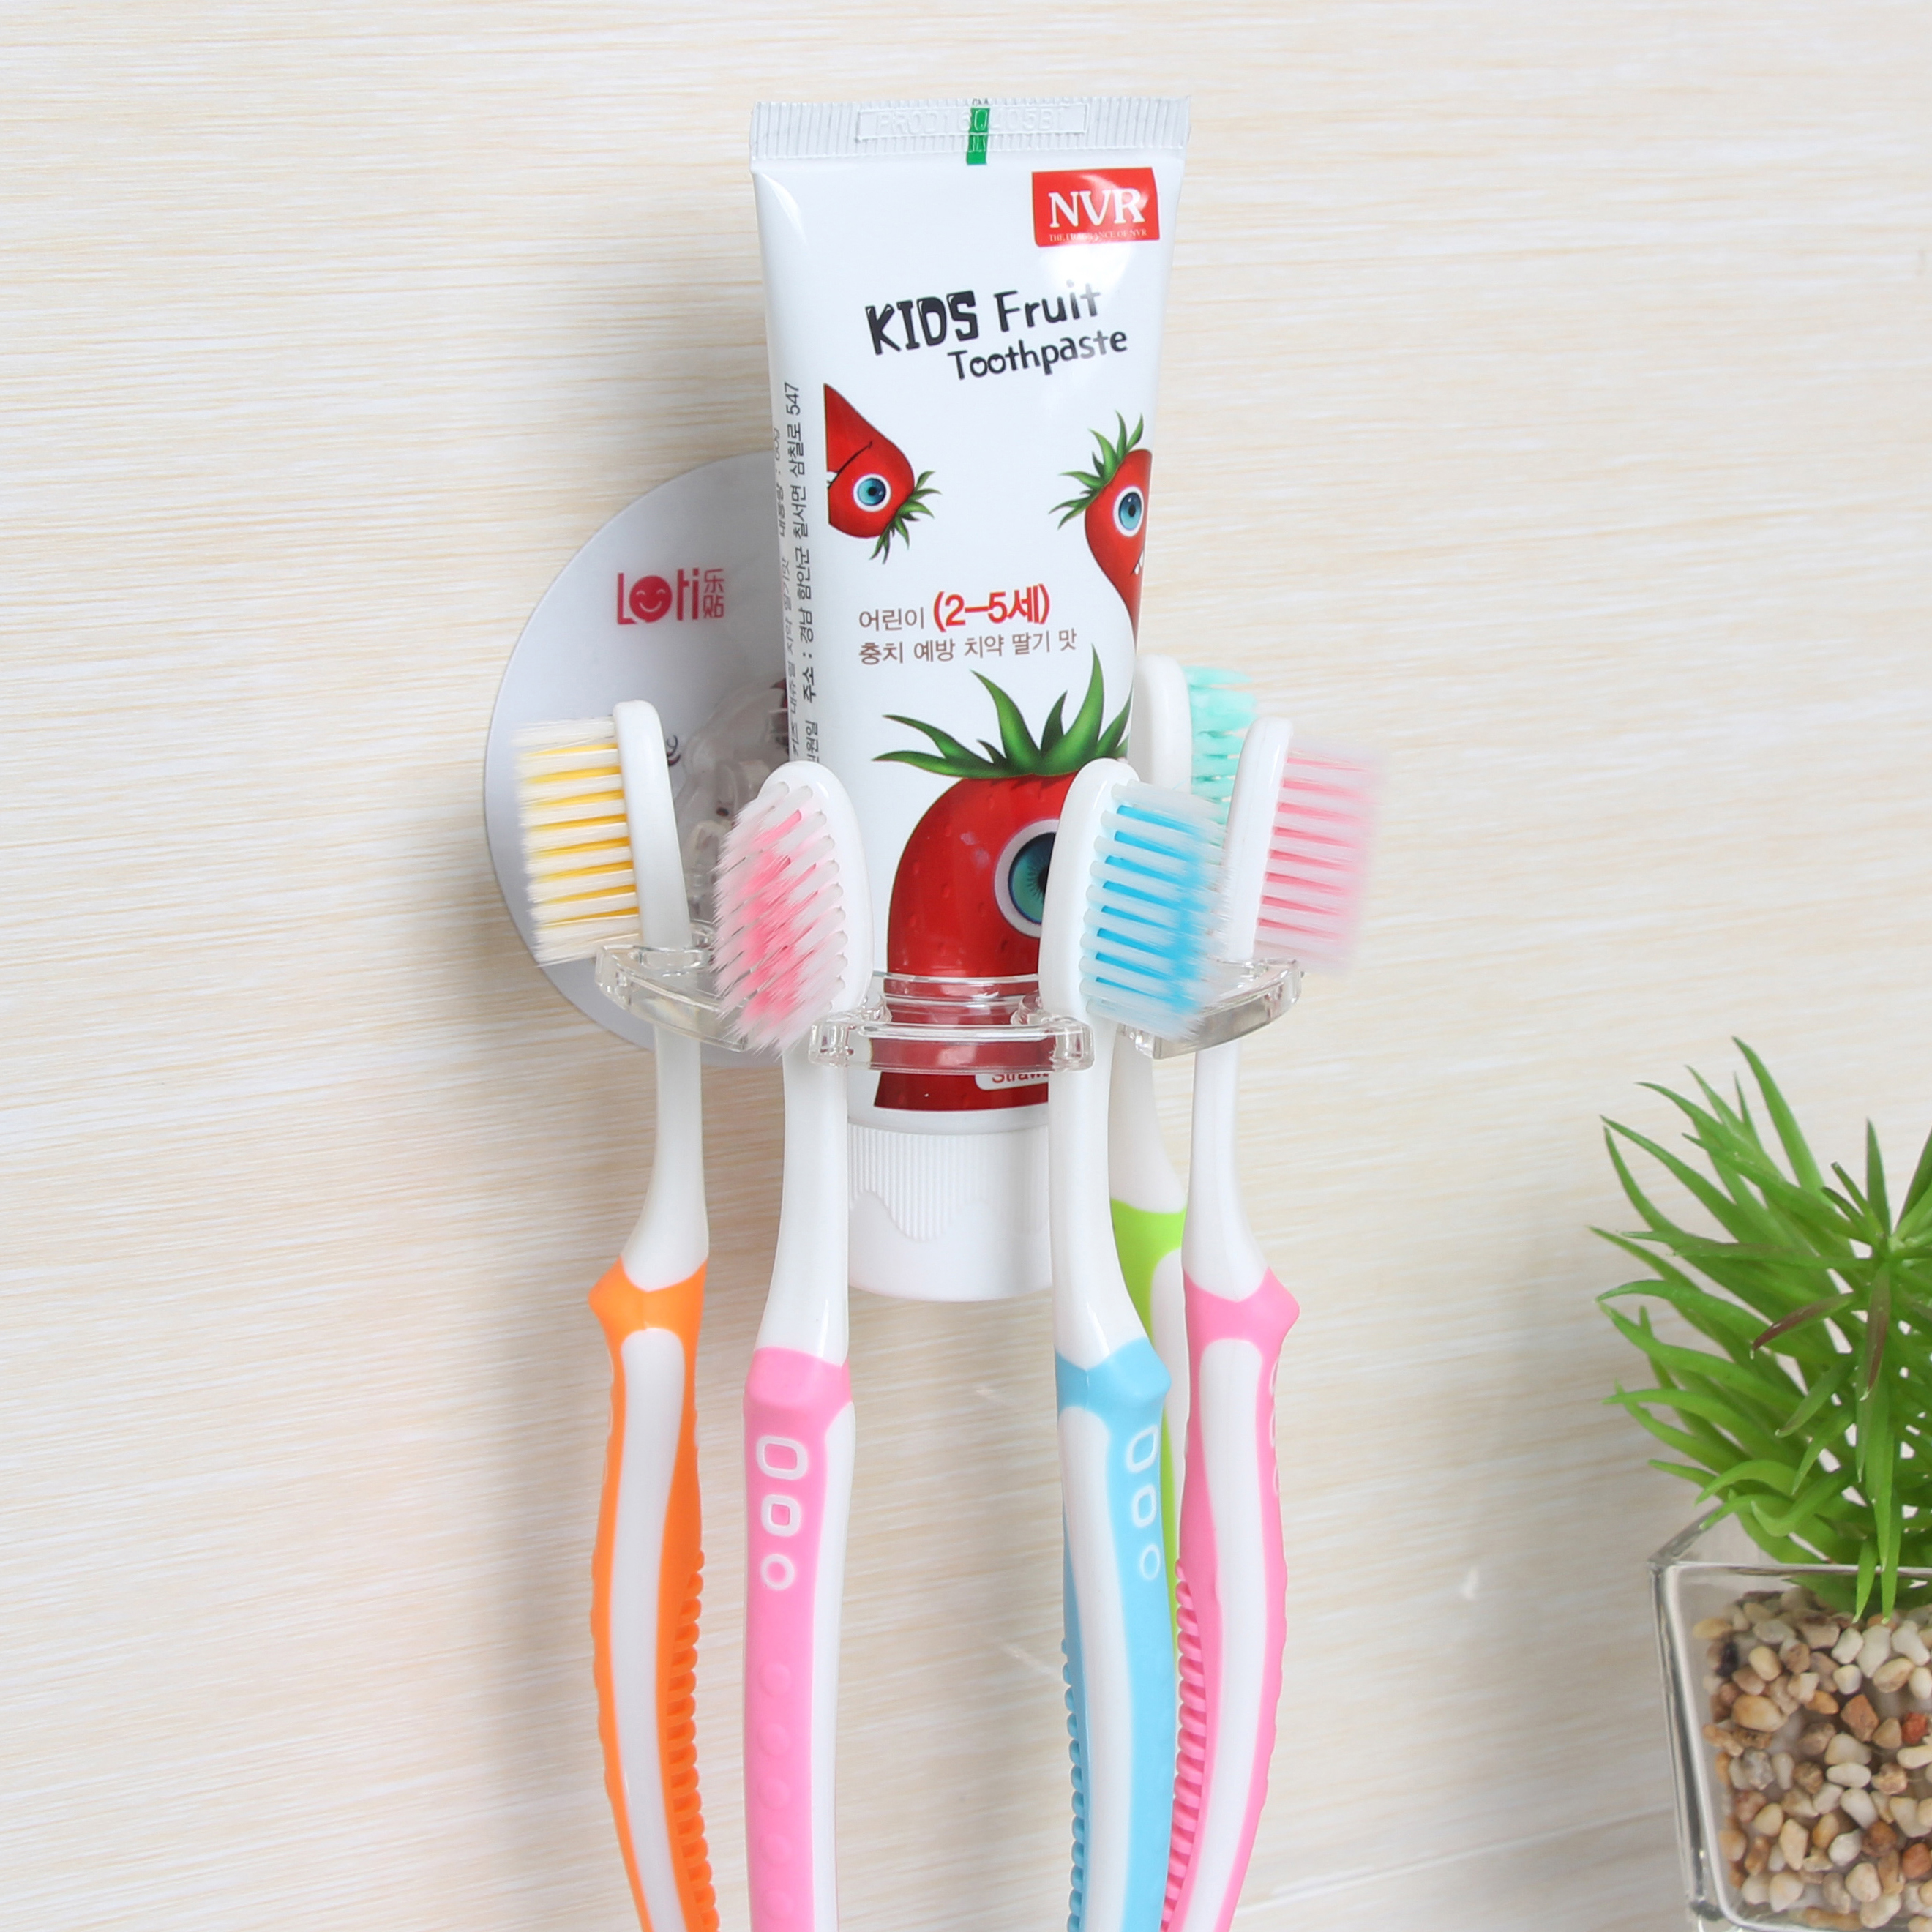 Electric Toothbrush Holder Wall Mount Toothbrush Holder Buy Electric Toothbrush Holder Wall Mount Toothbrush Holder Wall Mount Wire Holders Product On Alibaba Com